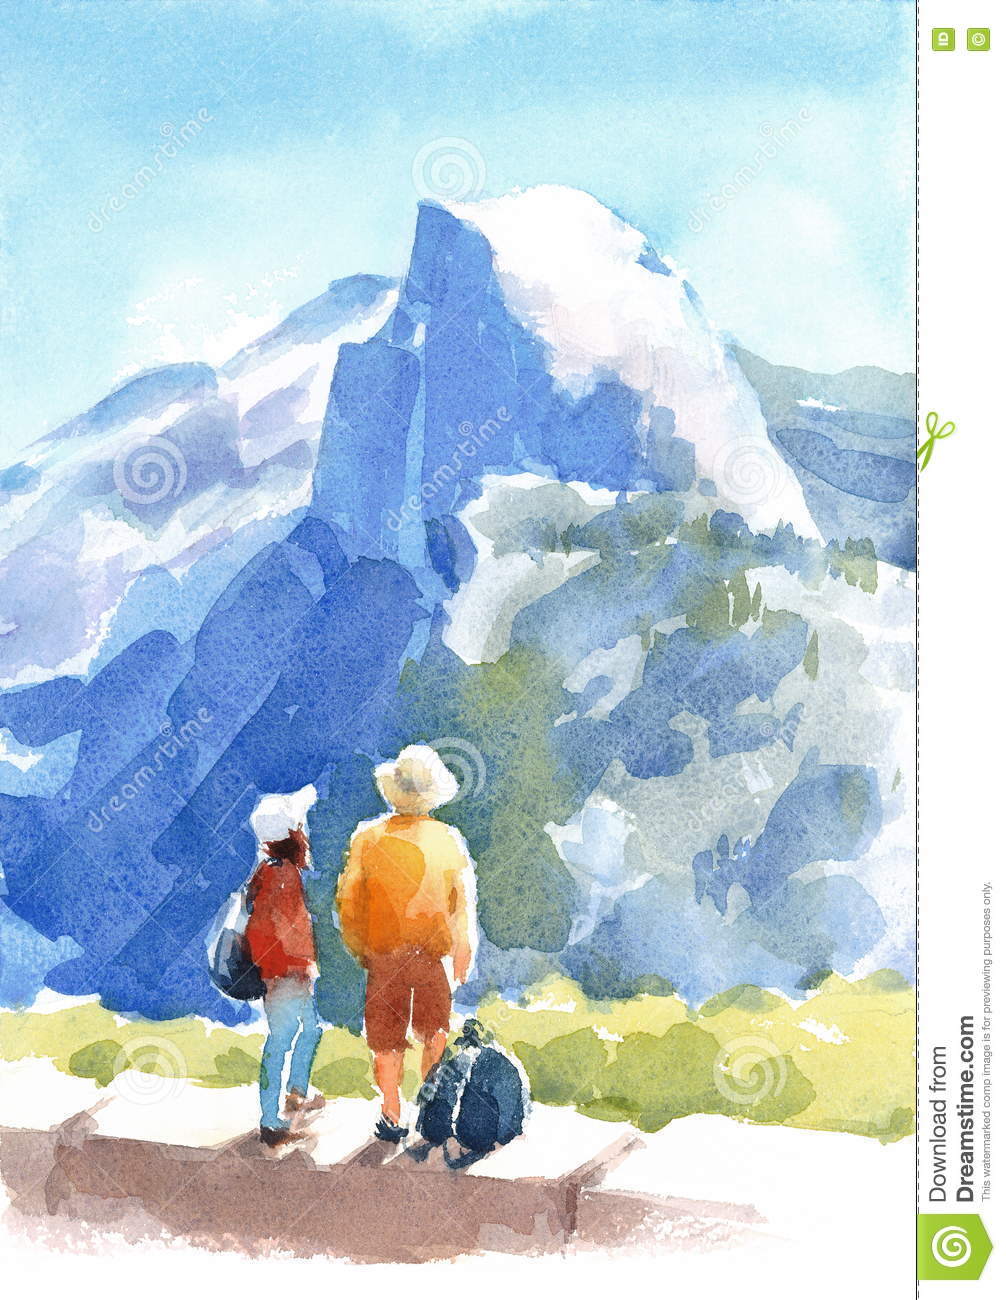 Mountain Yosemite National Park Landscape With People Watercolor ...